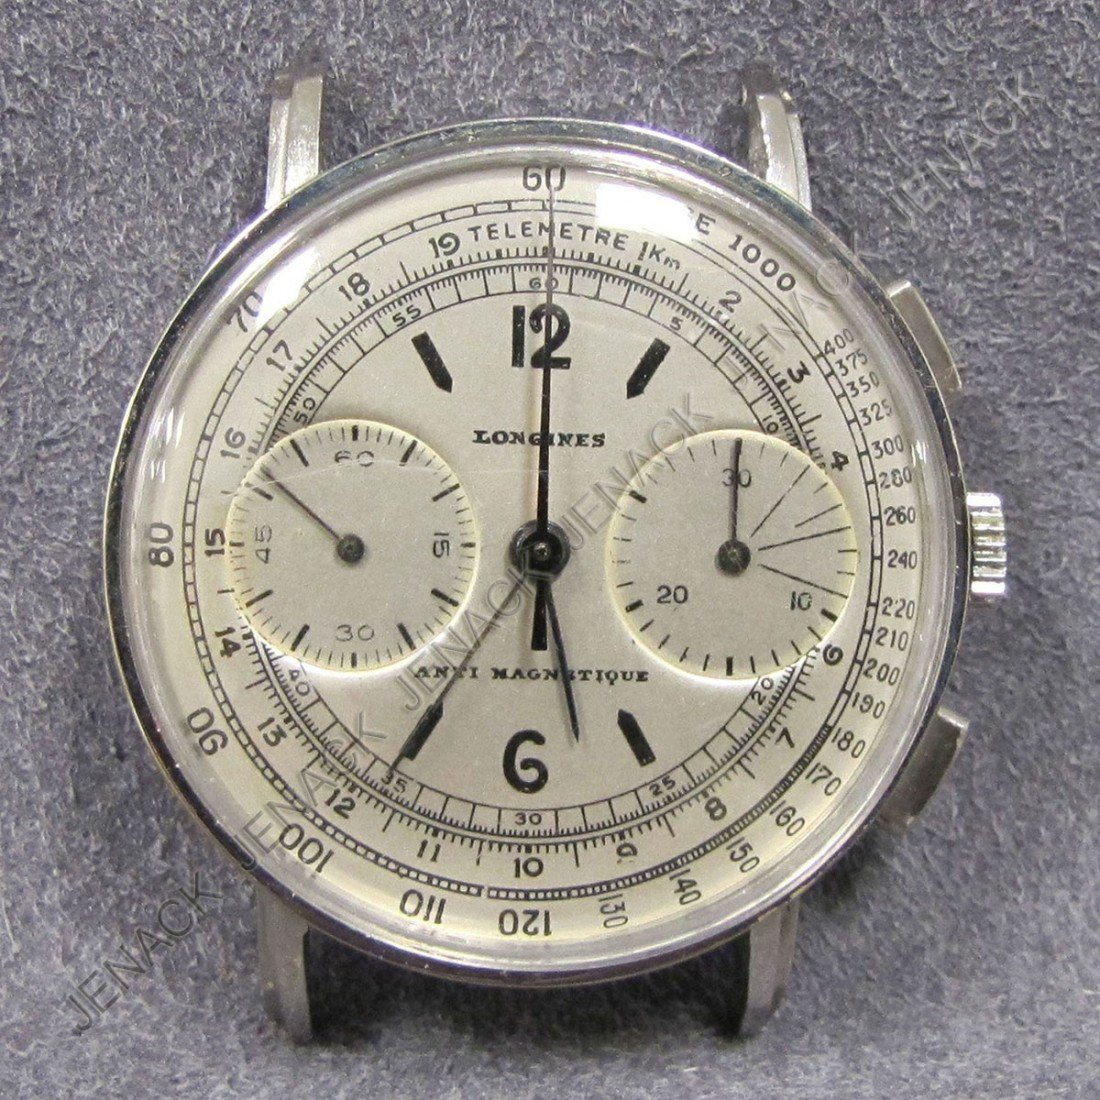 378: VINTAGE LONGINES STAINLESS STEEL CHRONOGRAPH